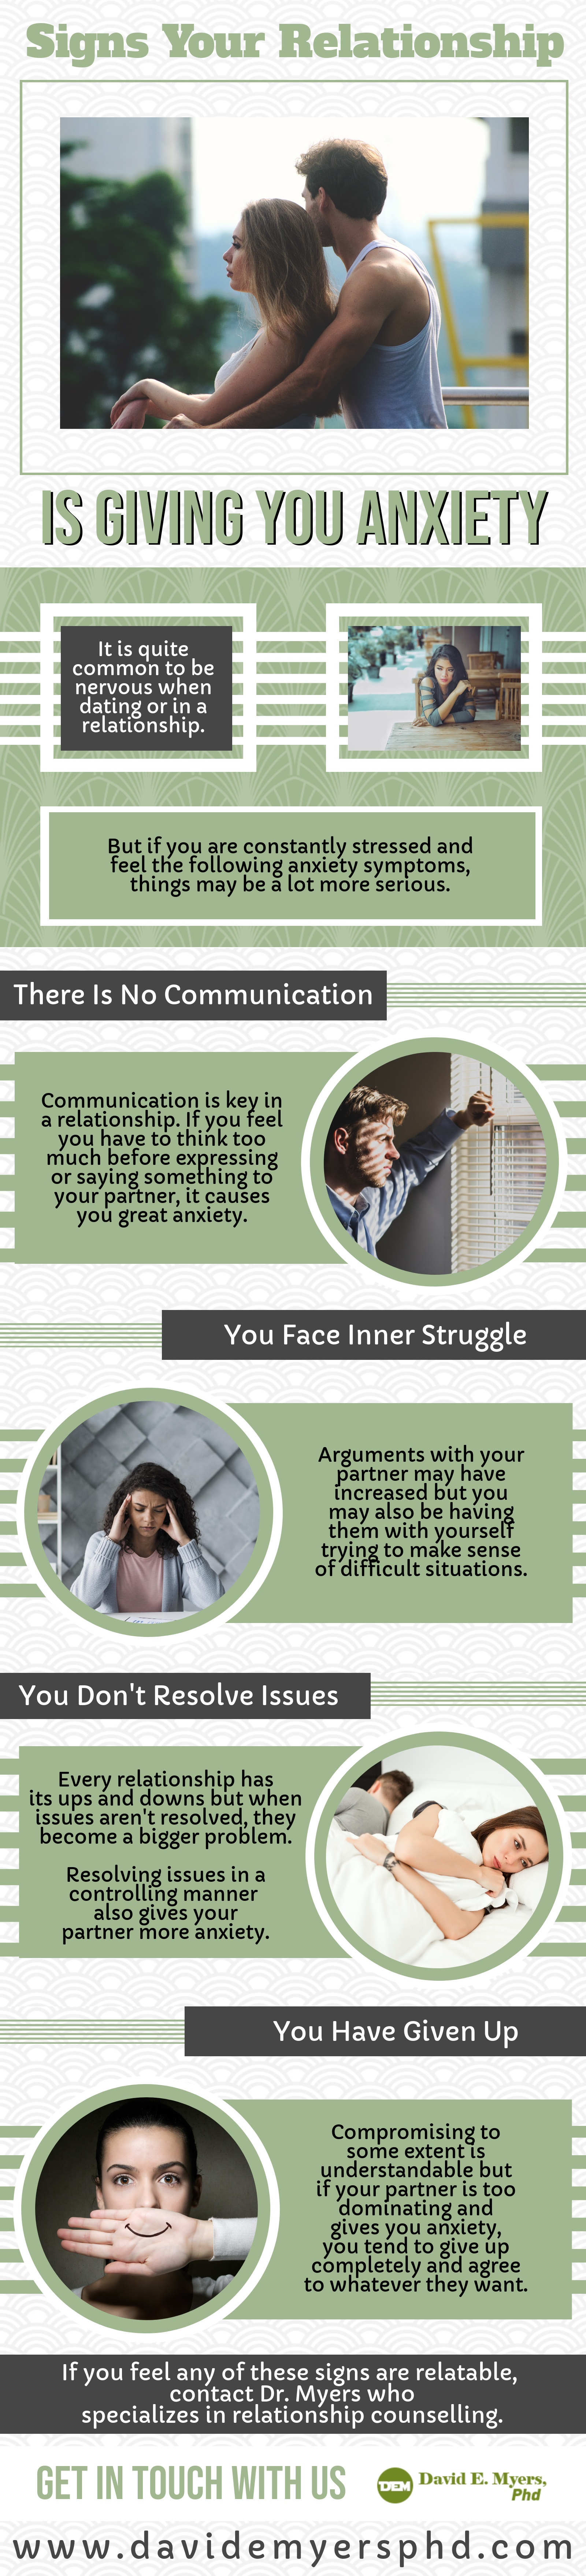 Image showing infographic for therapist in mississippi